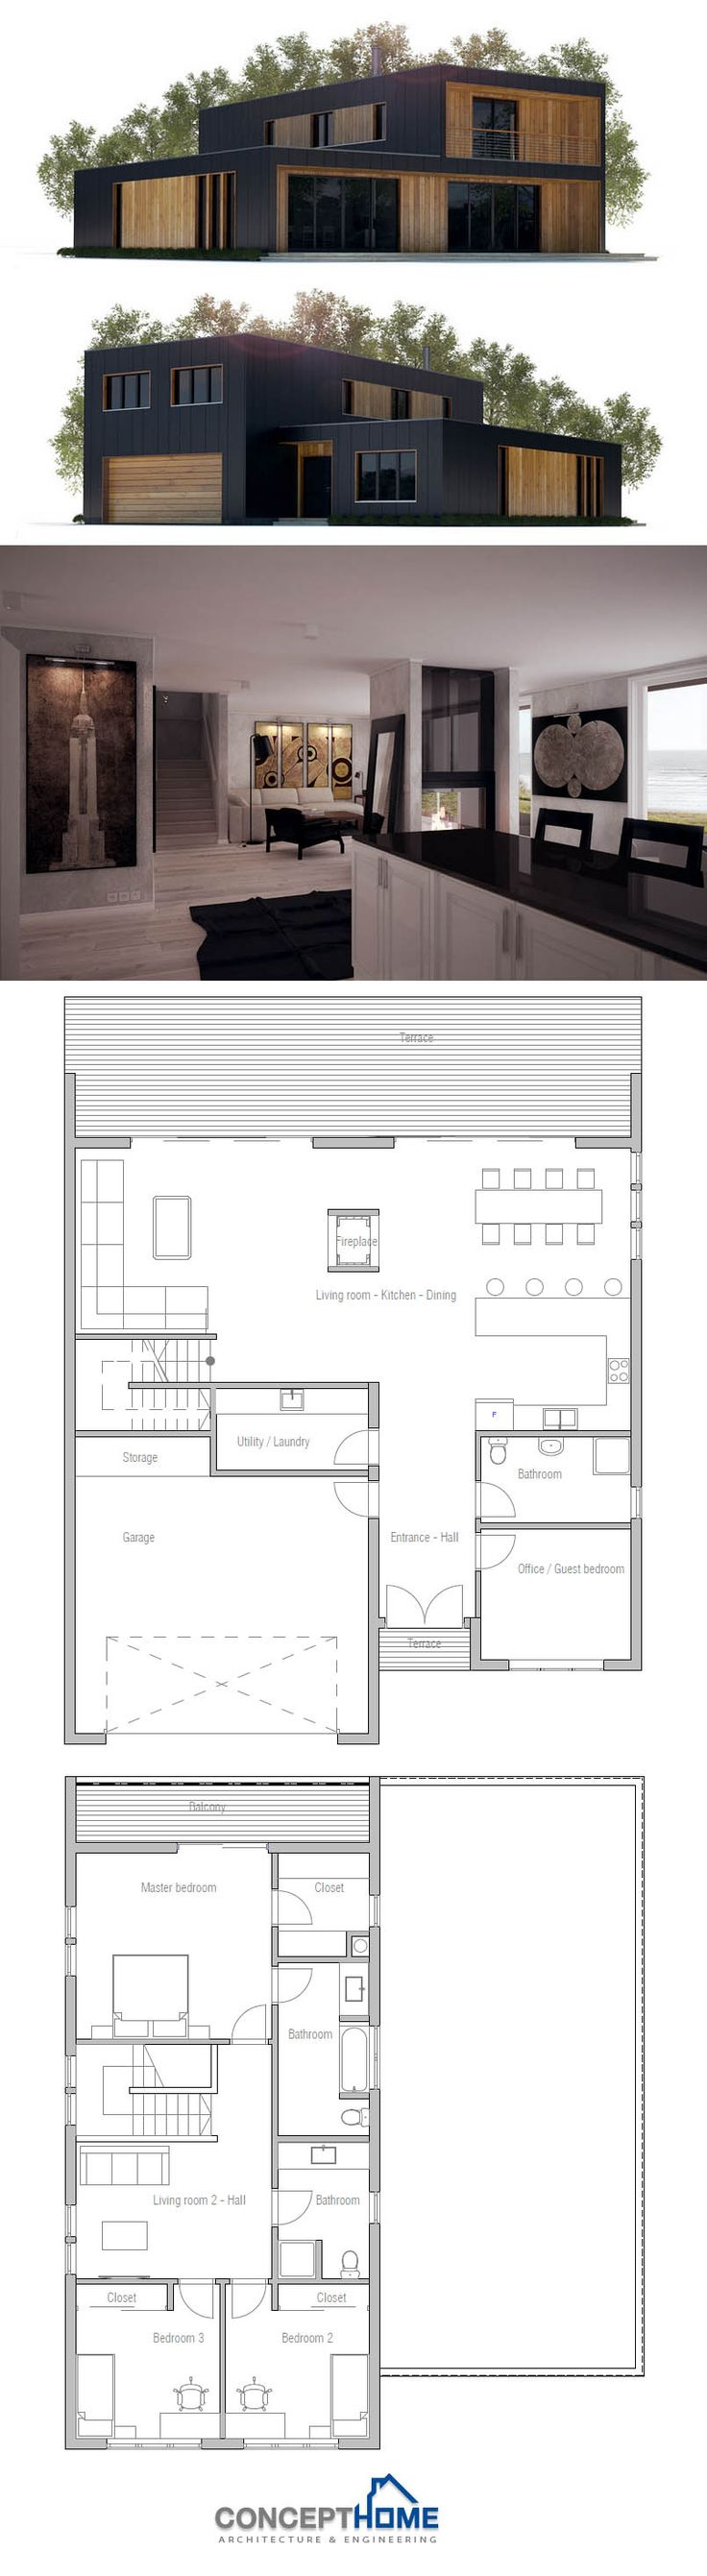 House Plan Who Else Wants Simple Step-By-Step Plans To Design And Build A Container Home From Scratch? http://build-acontainerhome.blogspot.com?prod=h3eVgY5T